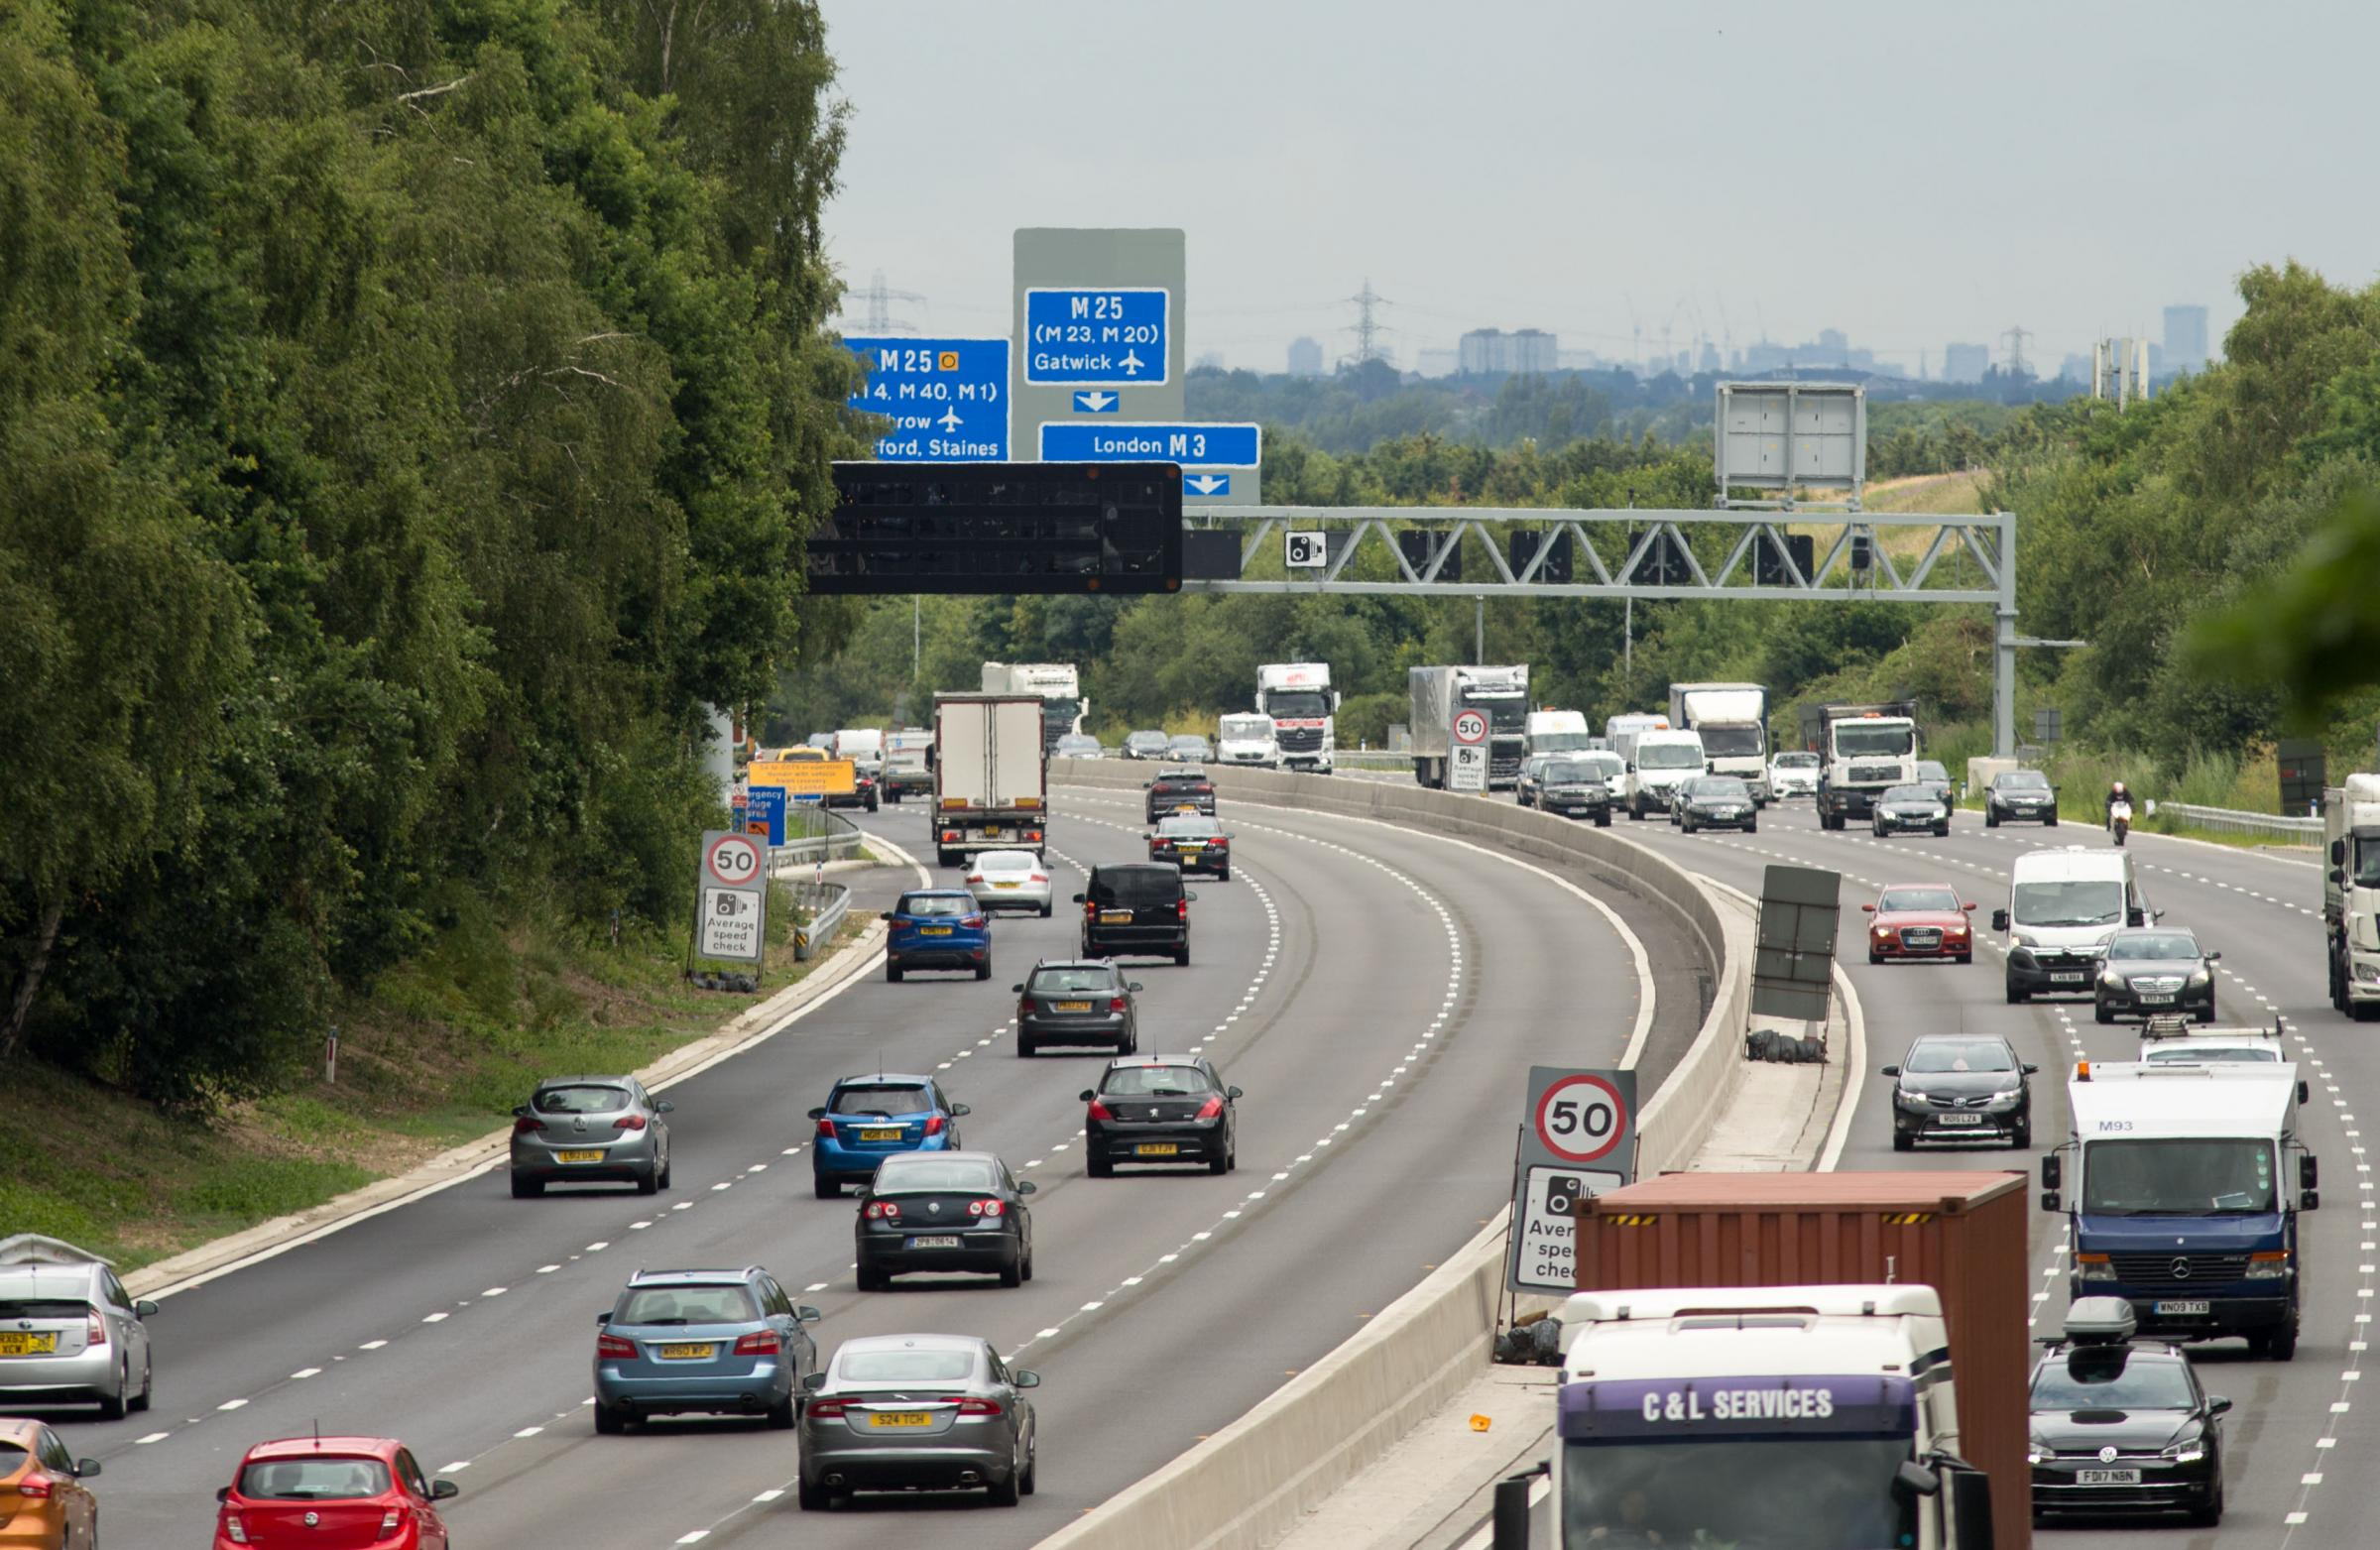 Smart motorways: Where are they in the UK? Full list of locations